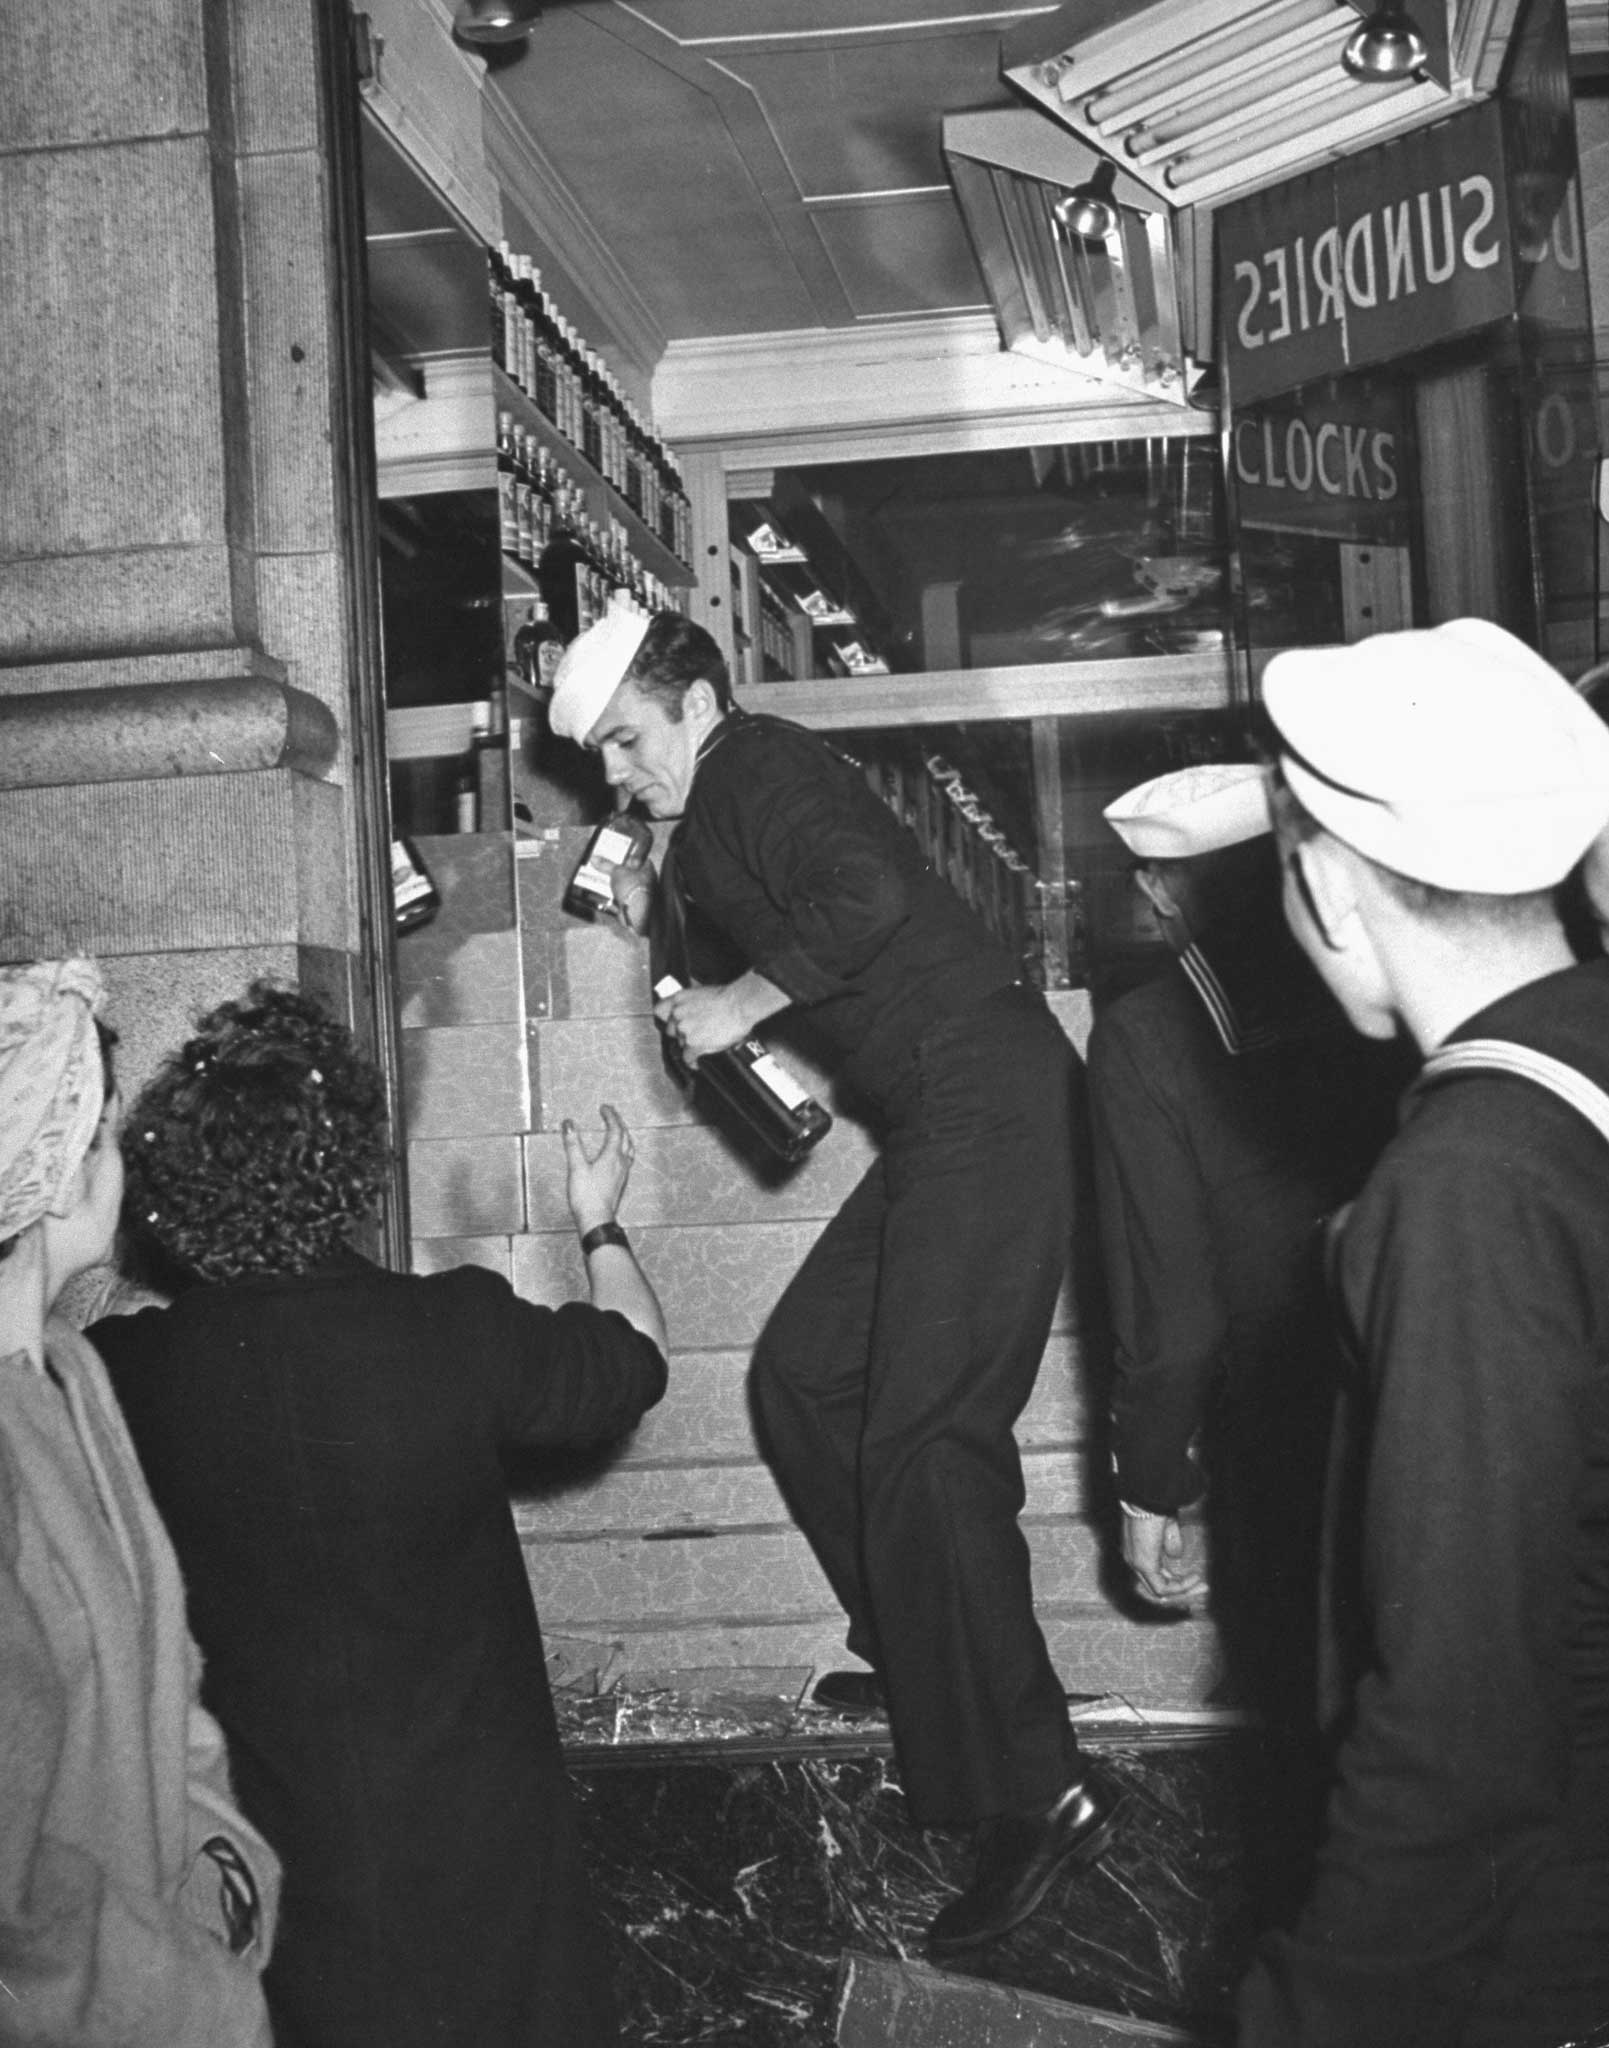 Caption from LIFE.  In San Francisco sailors break into a liquor store and pilfer the stock. Revel turned into a riot as tense servicemen, reprieved from impending Pacific war-zone duty, defaced statues, over-turned street cars, ripped down bond booths, attacked girls. The toll: 1,000 casualties.